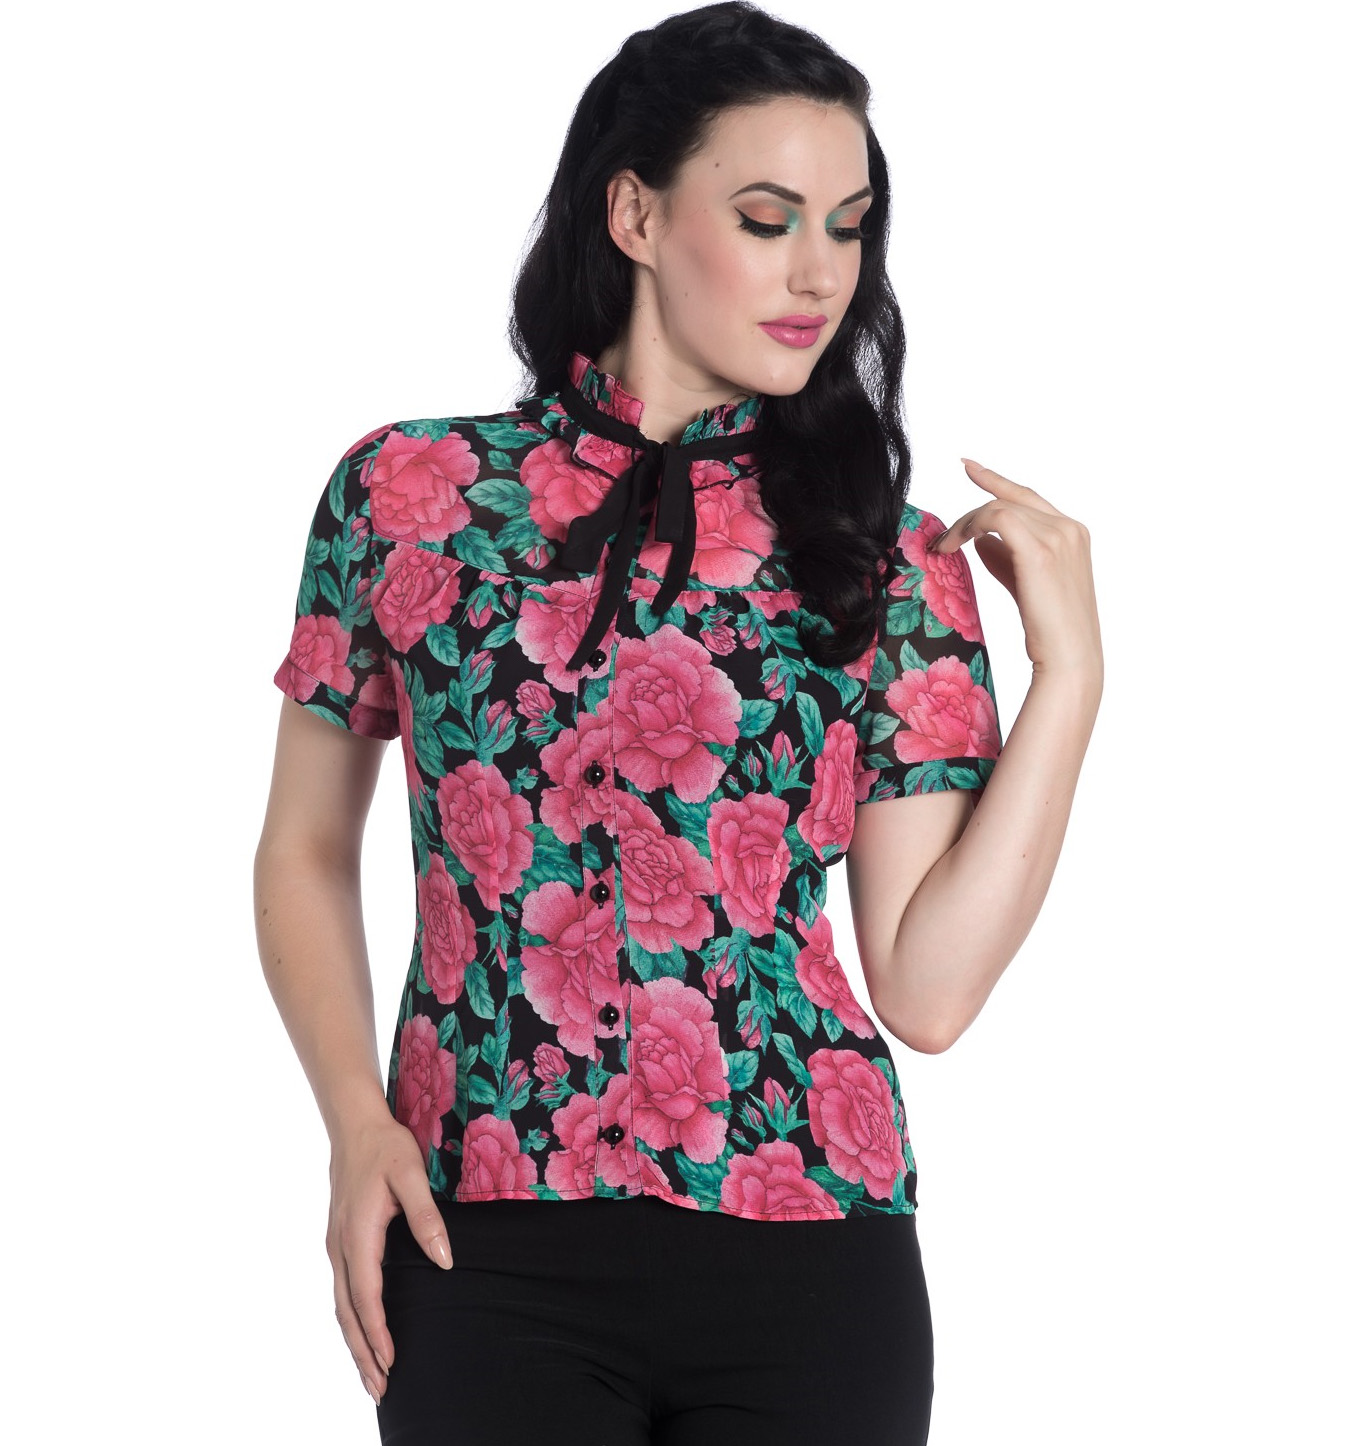 Hell-Bunny-Shirt-Top-Flowers-Roses-EDEN-ROSE-Black-Pink-Blouse-All-Sizes thumbnail 23